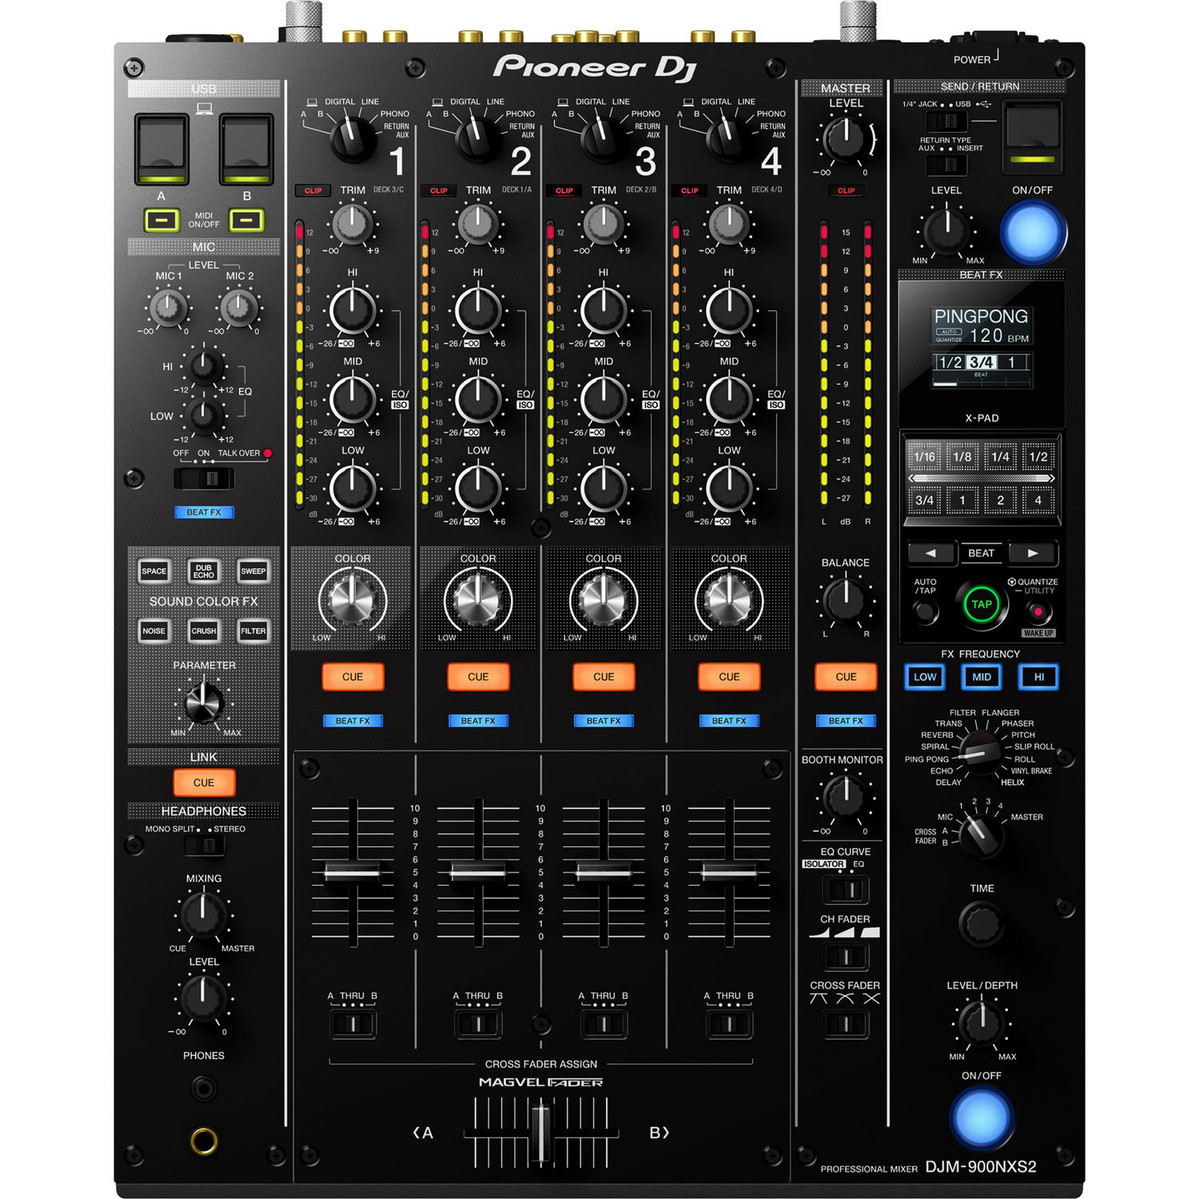 Download firmware or software - Pioneer DJ - USA